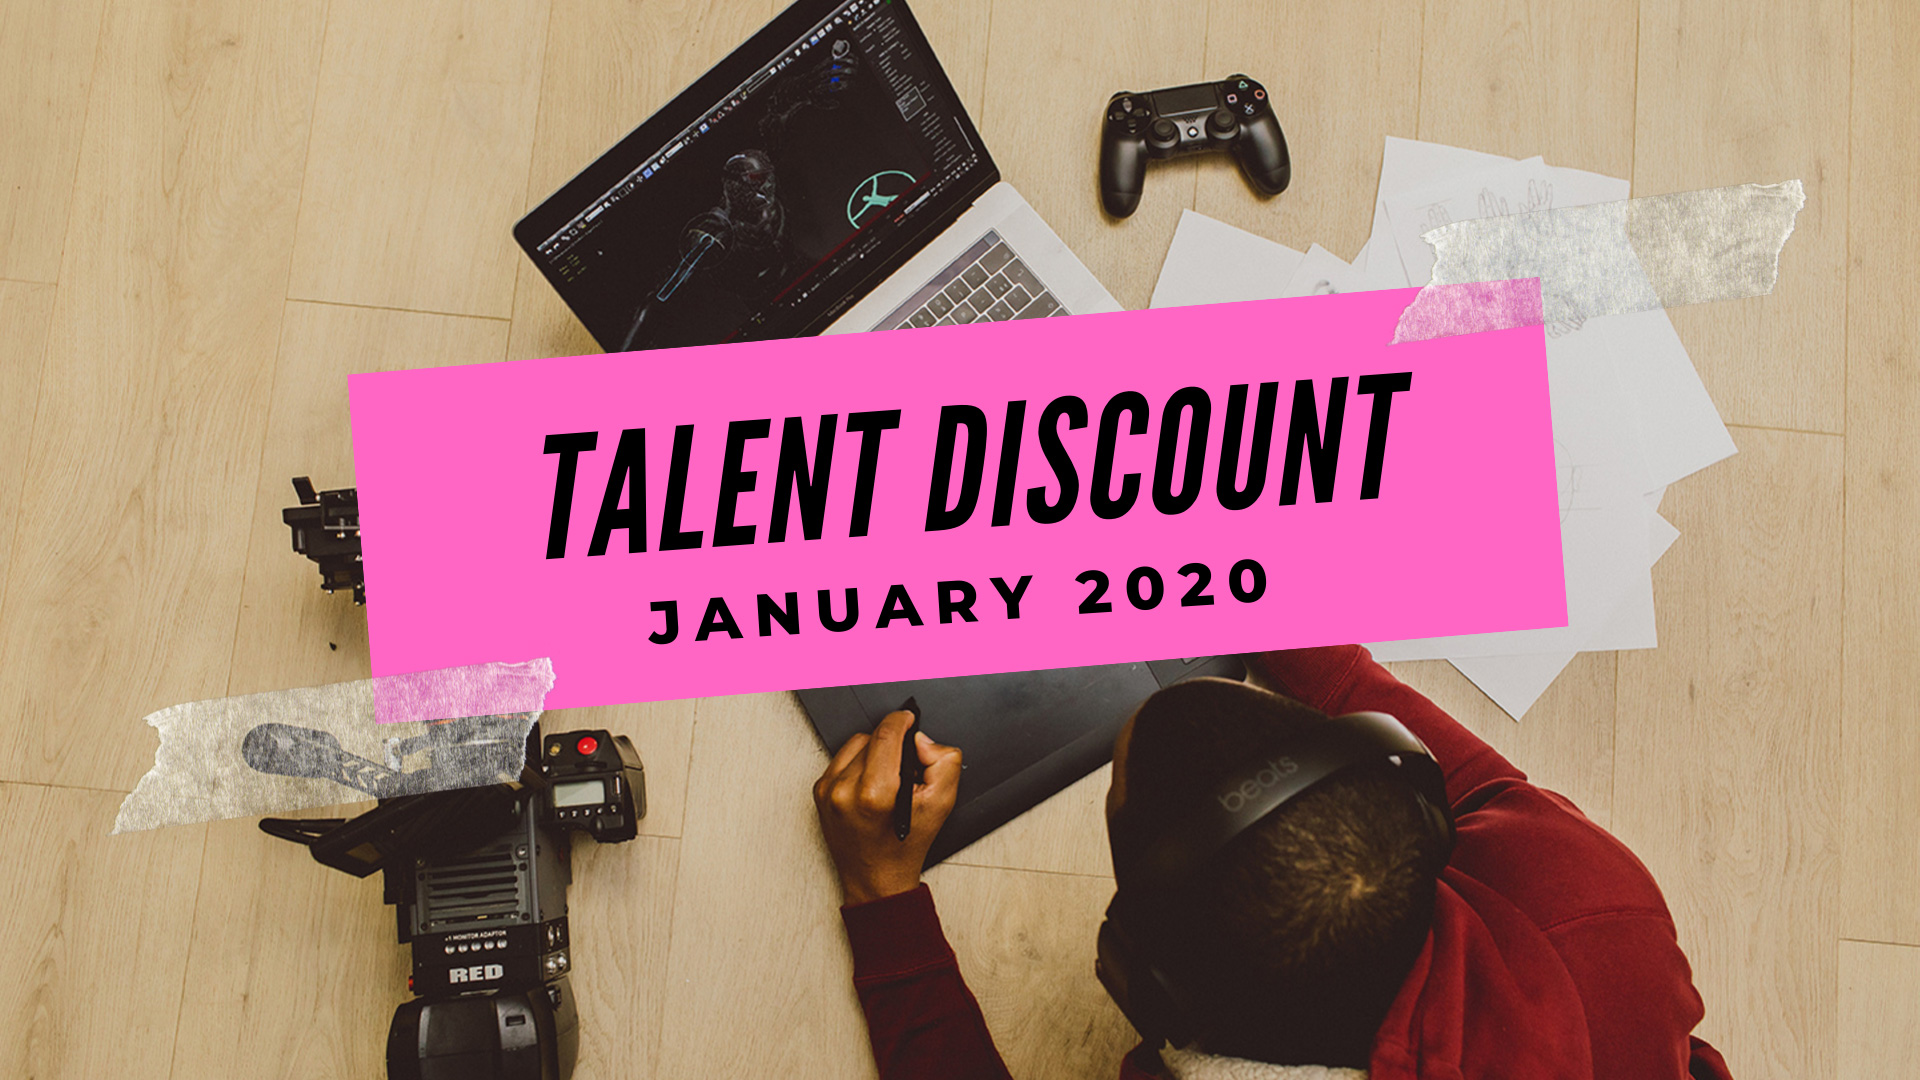 Talent Discount: January 2020